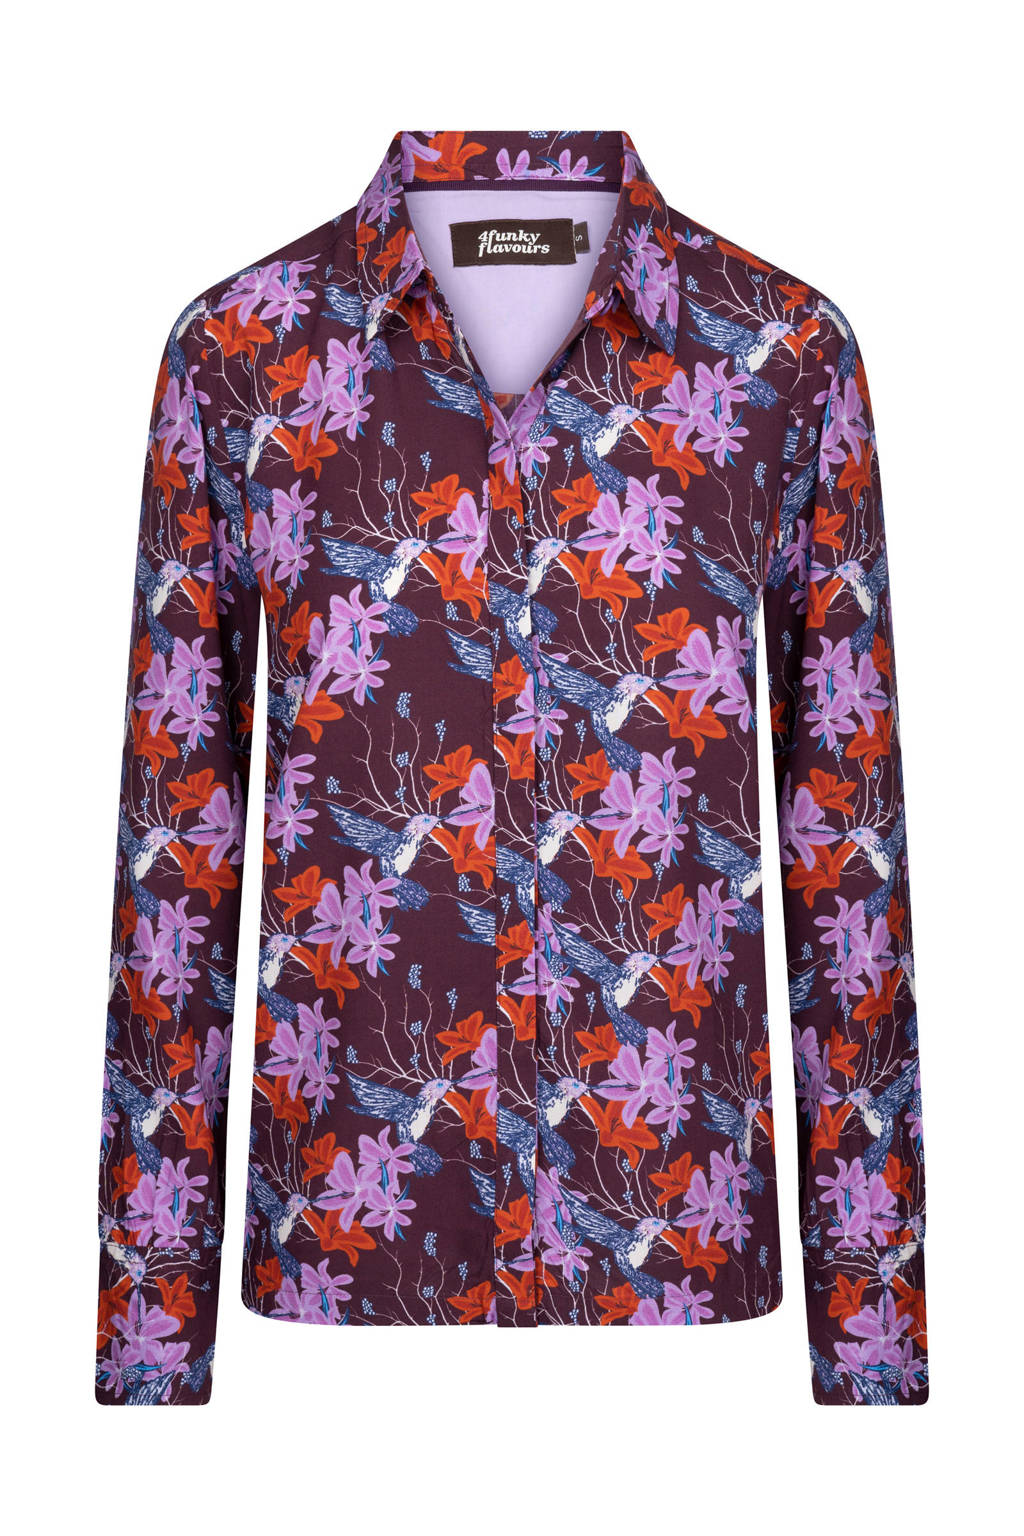 4funkyflavours blouse Praise met all over print donkerpaars/lila/rood, Donkerpaars/lila/rood